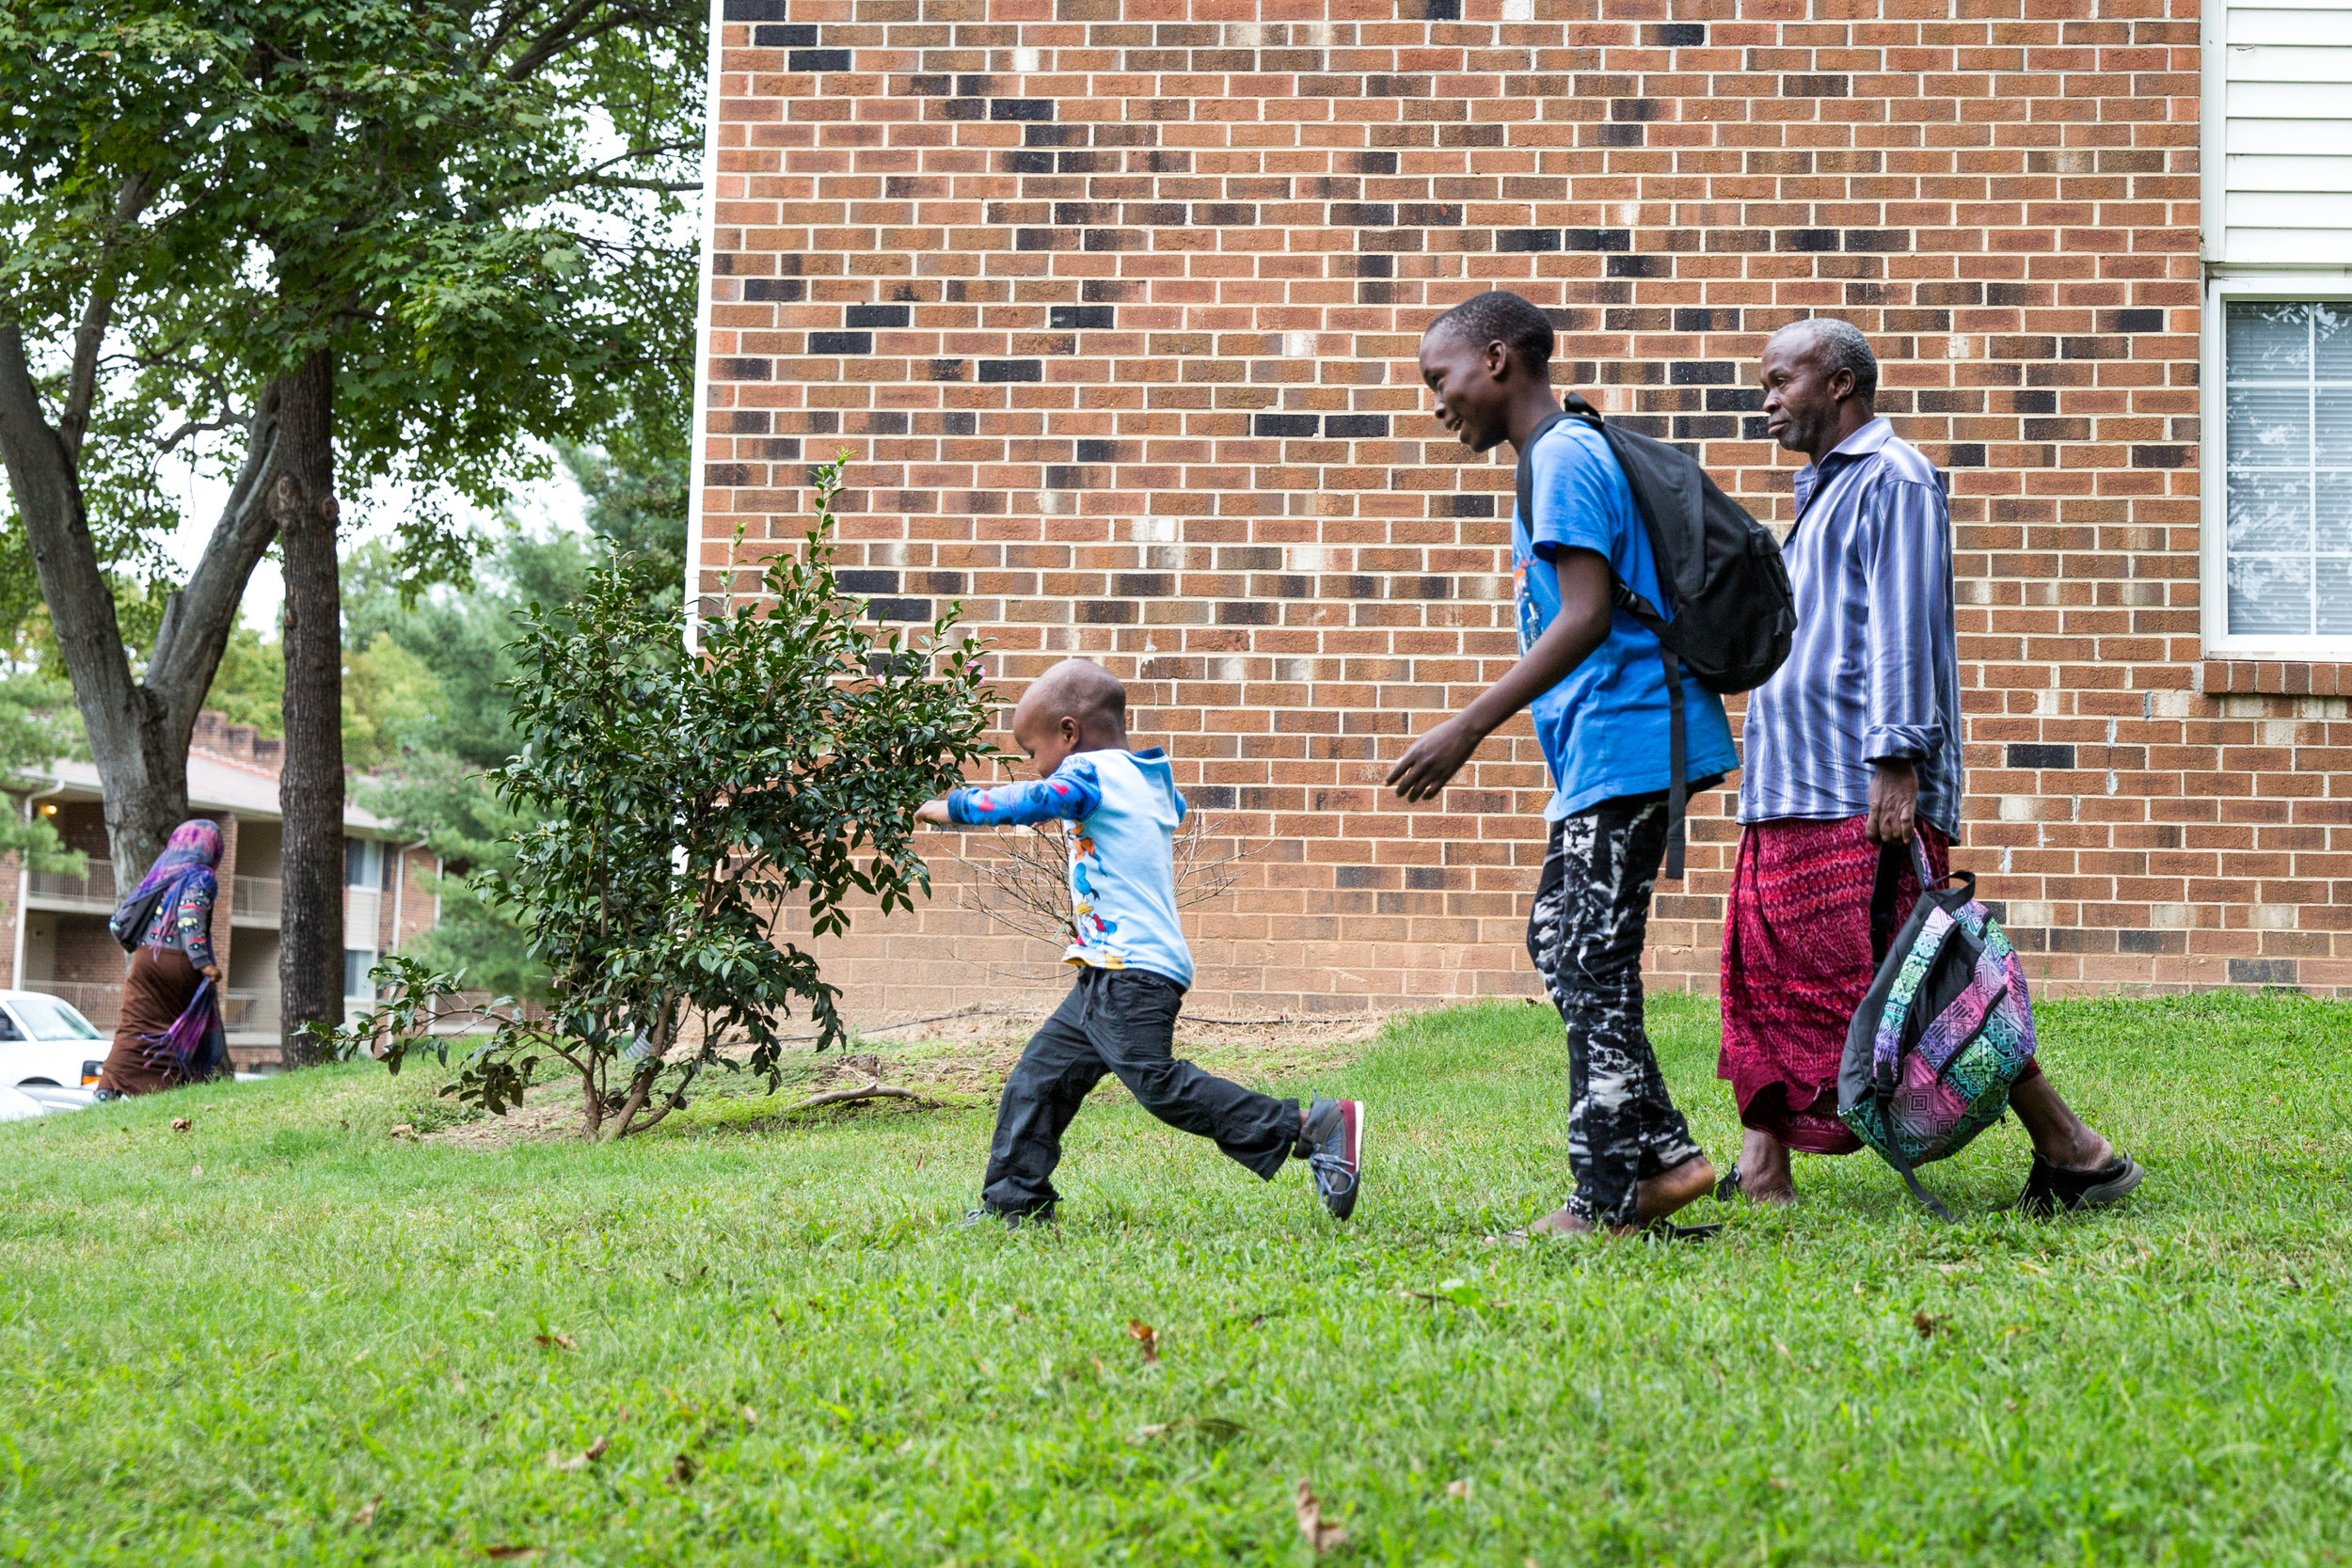 Fartune, Asimani, and Ali get dropped off from school. They haven't found anybody who speaks Swahili, so making friends has been difficult.